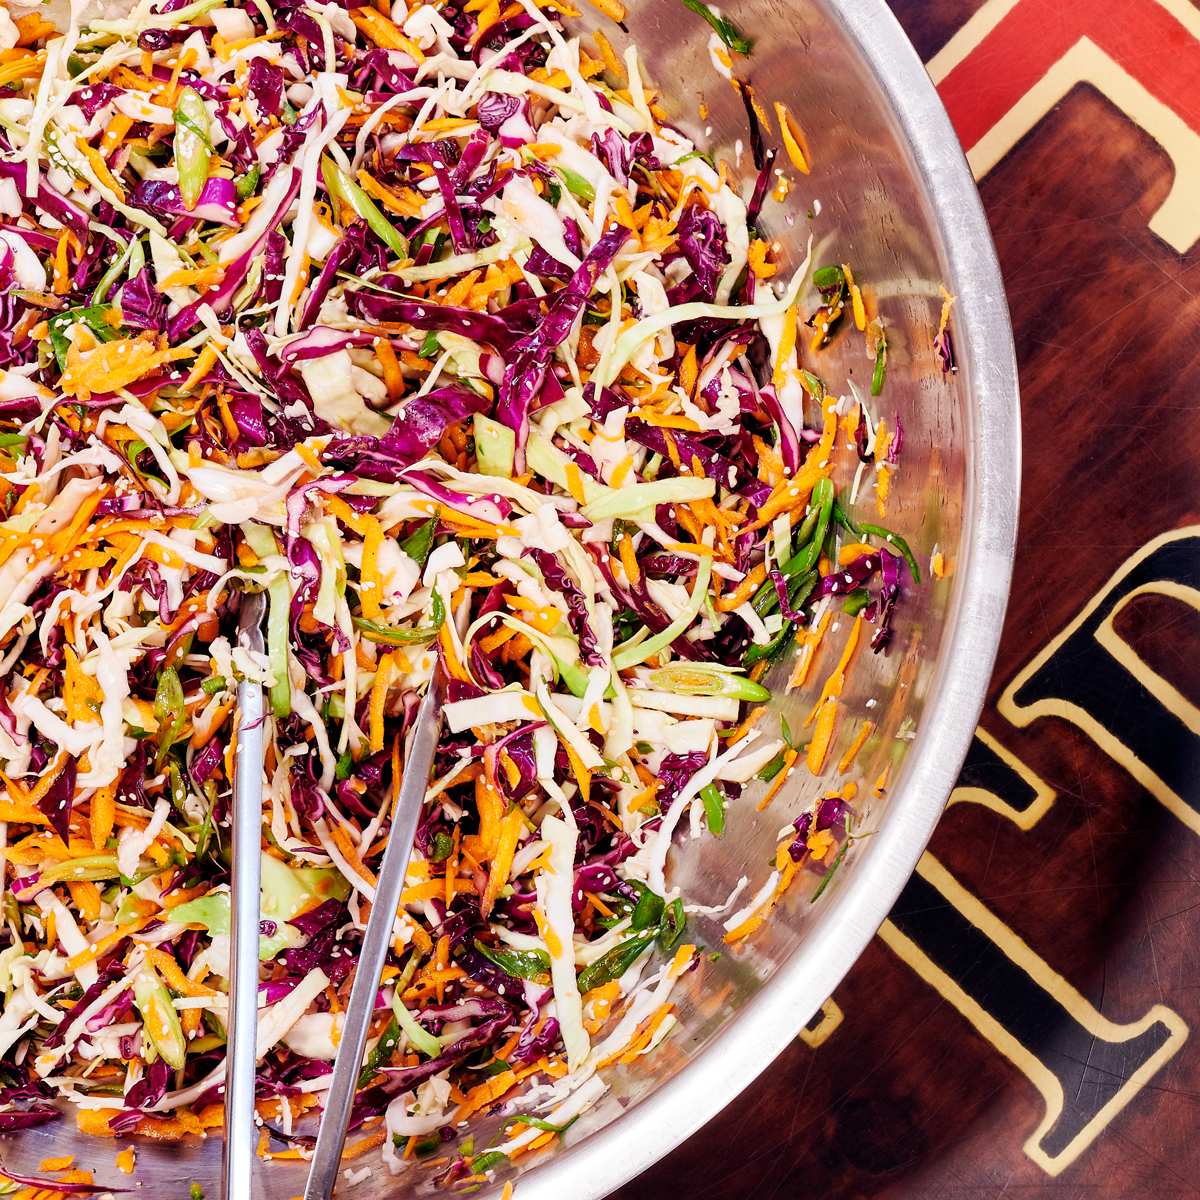 mayo-less coleslaw in a silver bowl